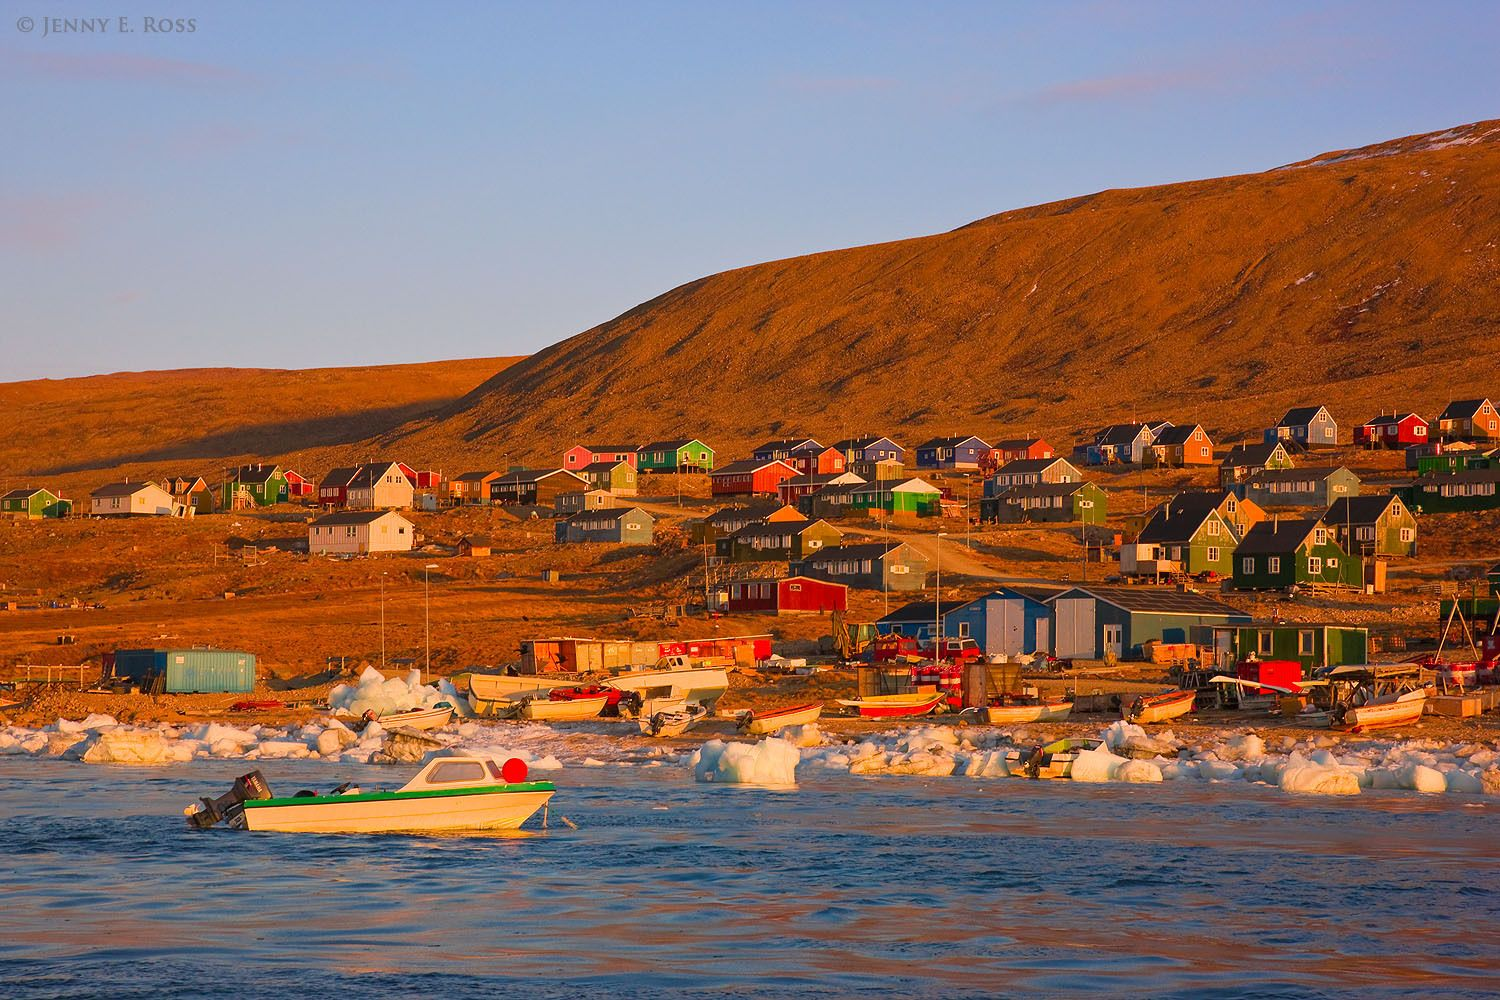 Small boats and colorful houses glow in the early morning light along the shoreline of Qaanaaq, at the edge of Murchison Sound in Baffin Bay, Northwest Greenland.